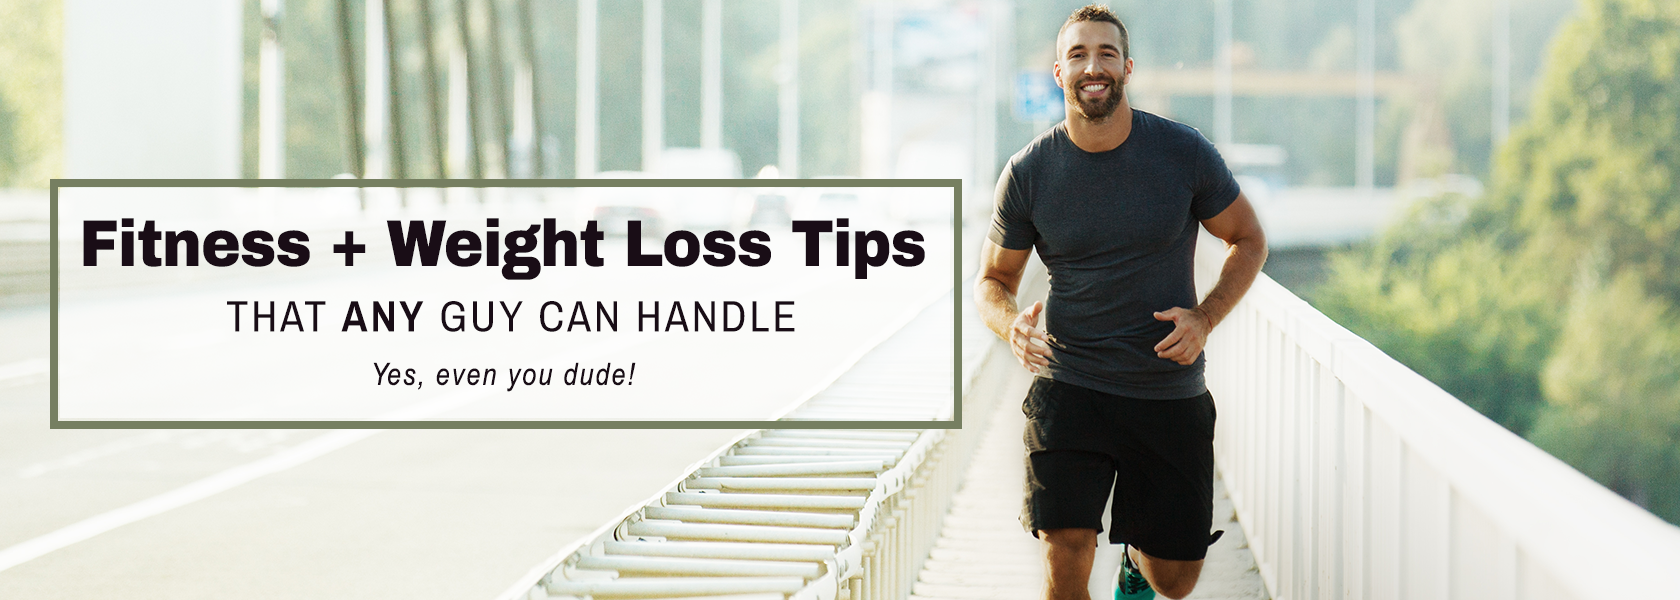 Joe running. Text Fittness + Weight Loss Tipps that any guy can handle. Yes, even you dude.